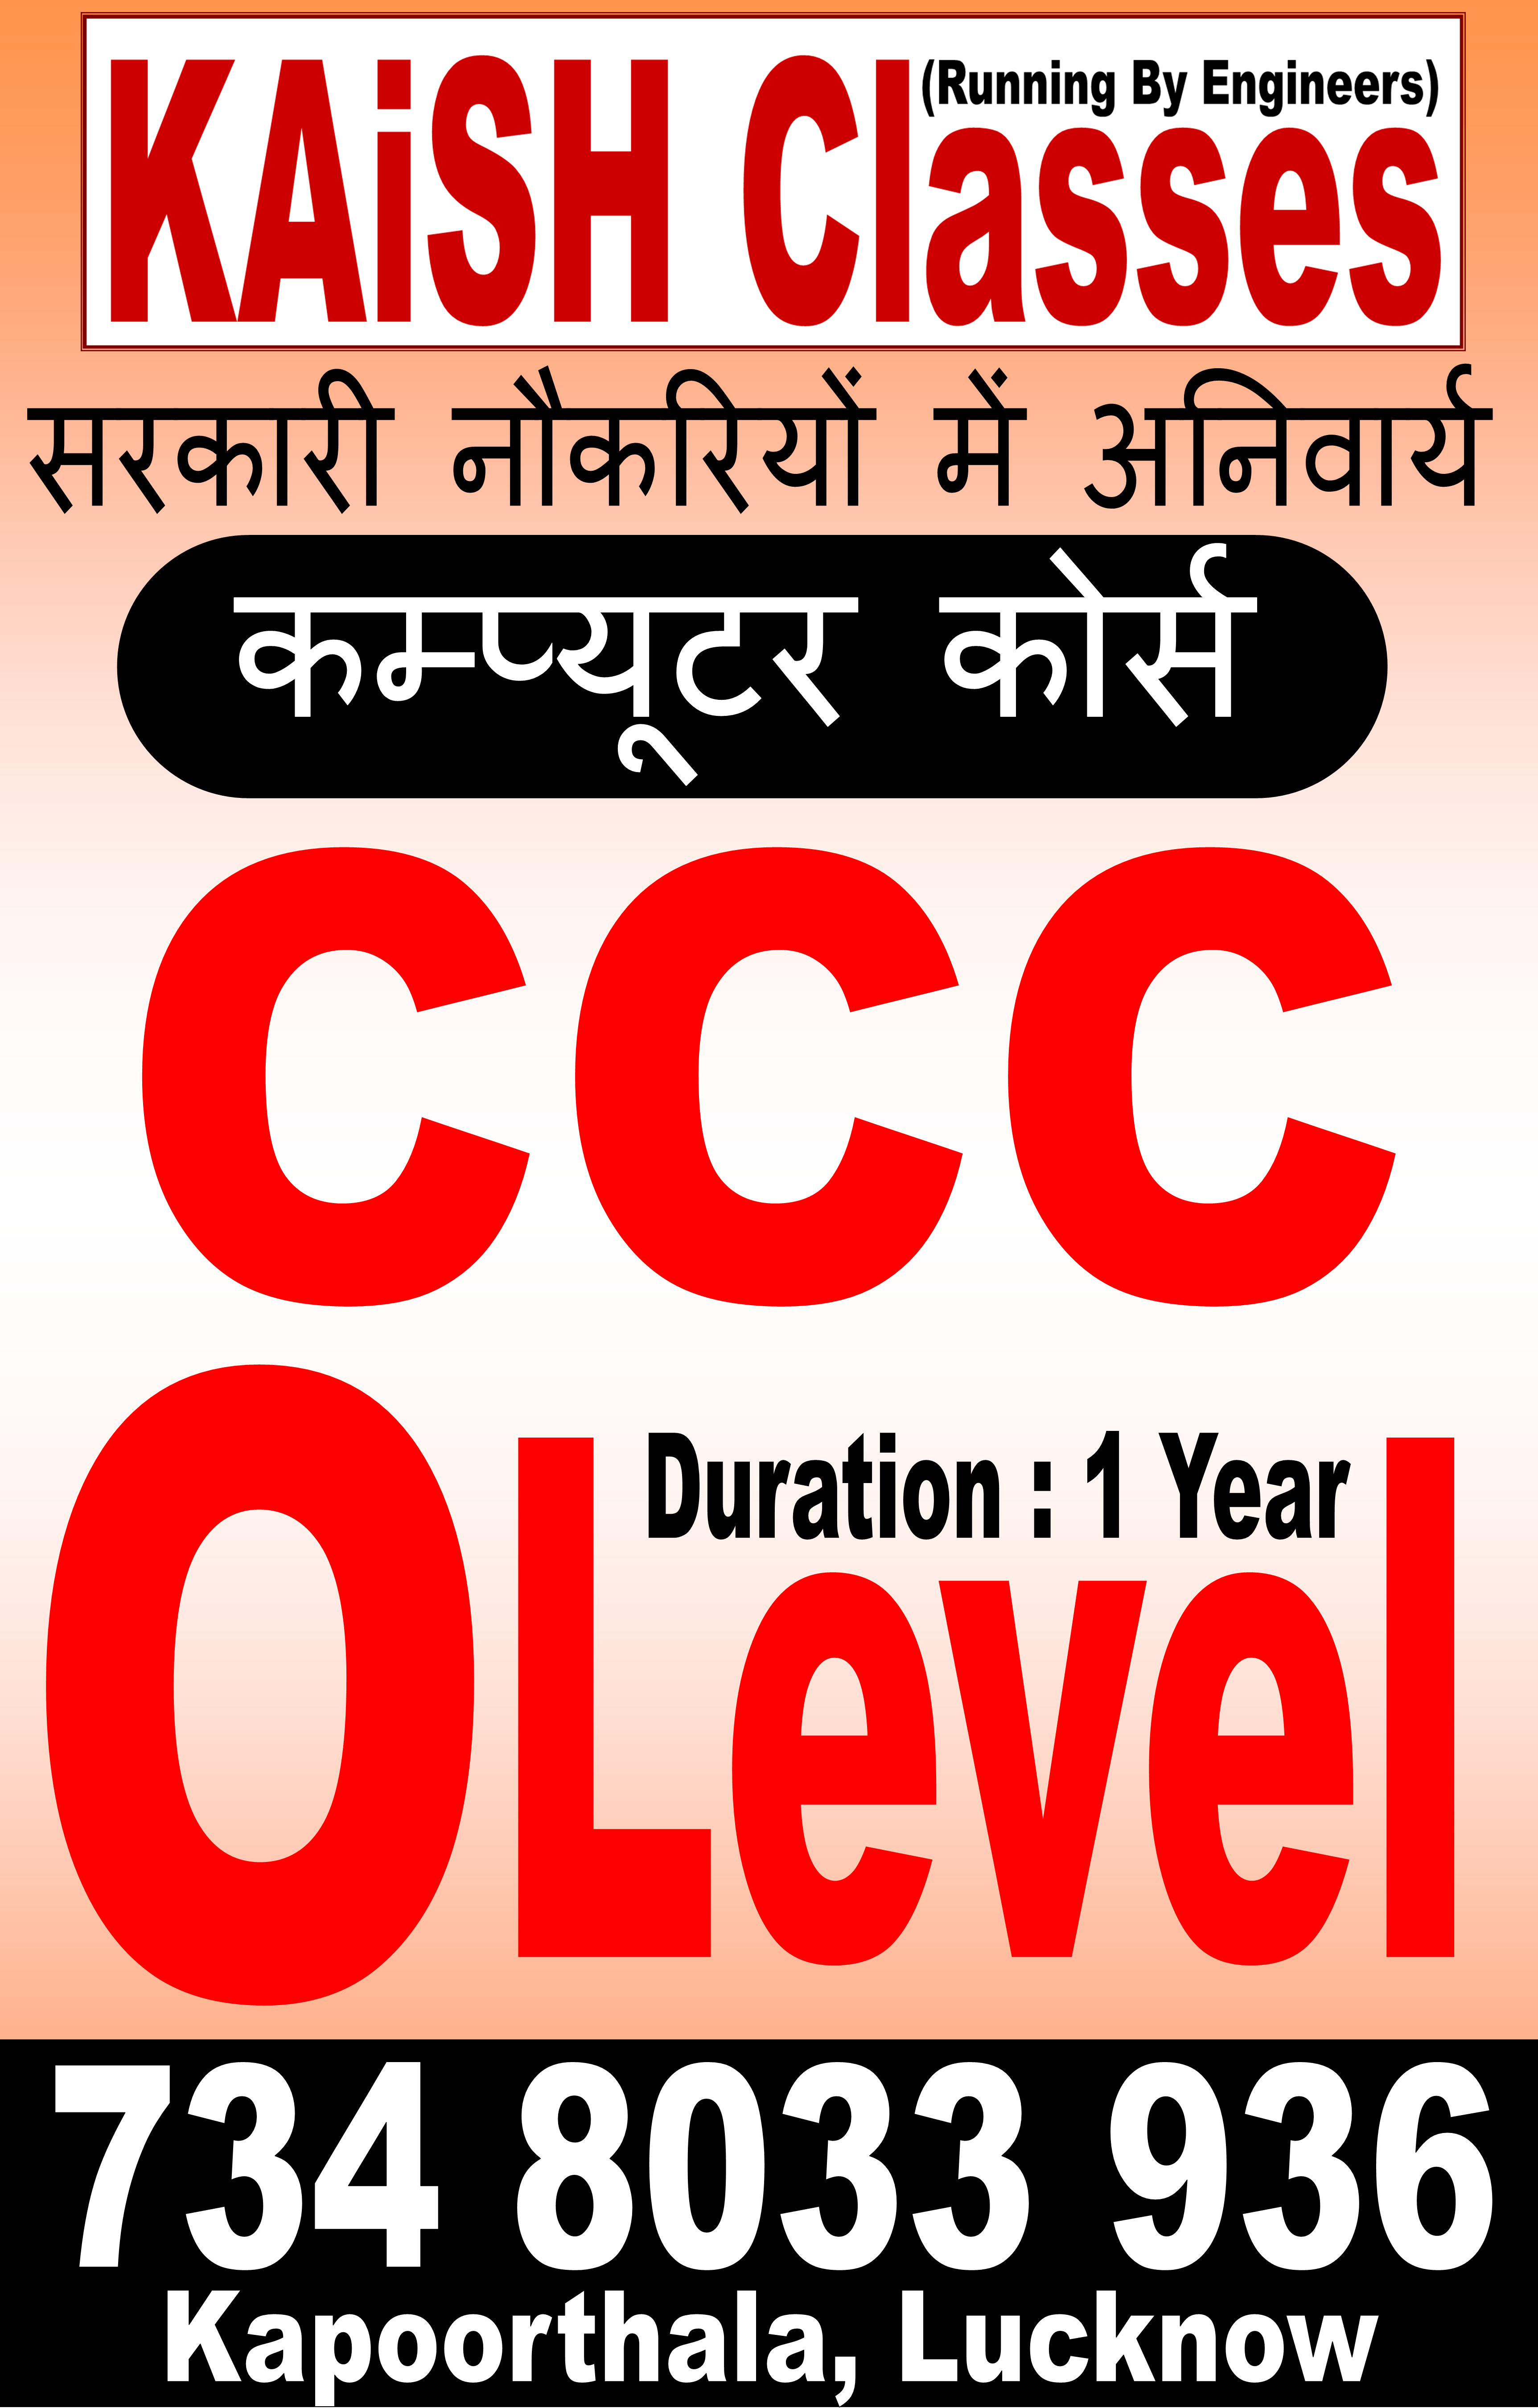 NIELIT 'O' Level Course in Aliganj, Lucknow, DOEACC 'O